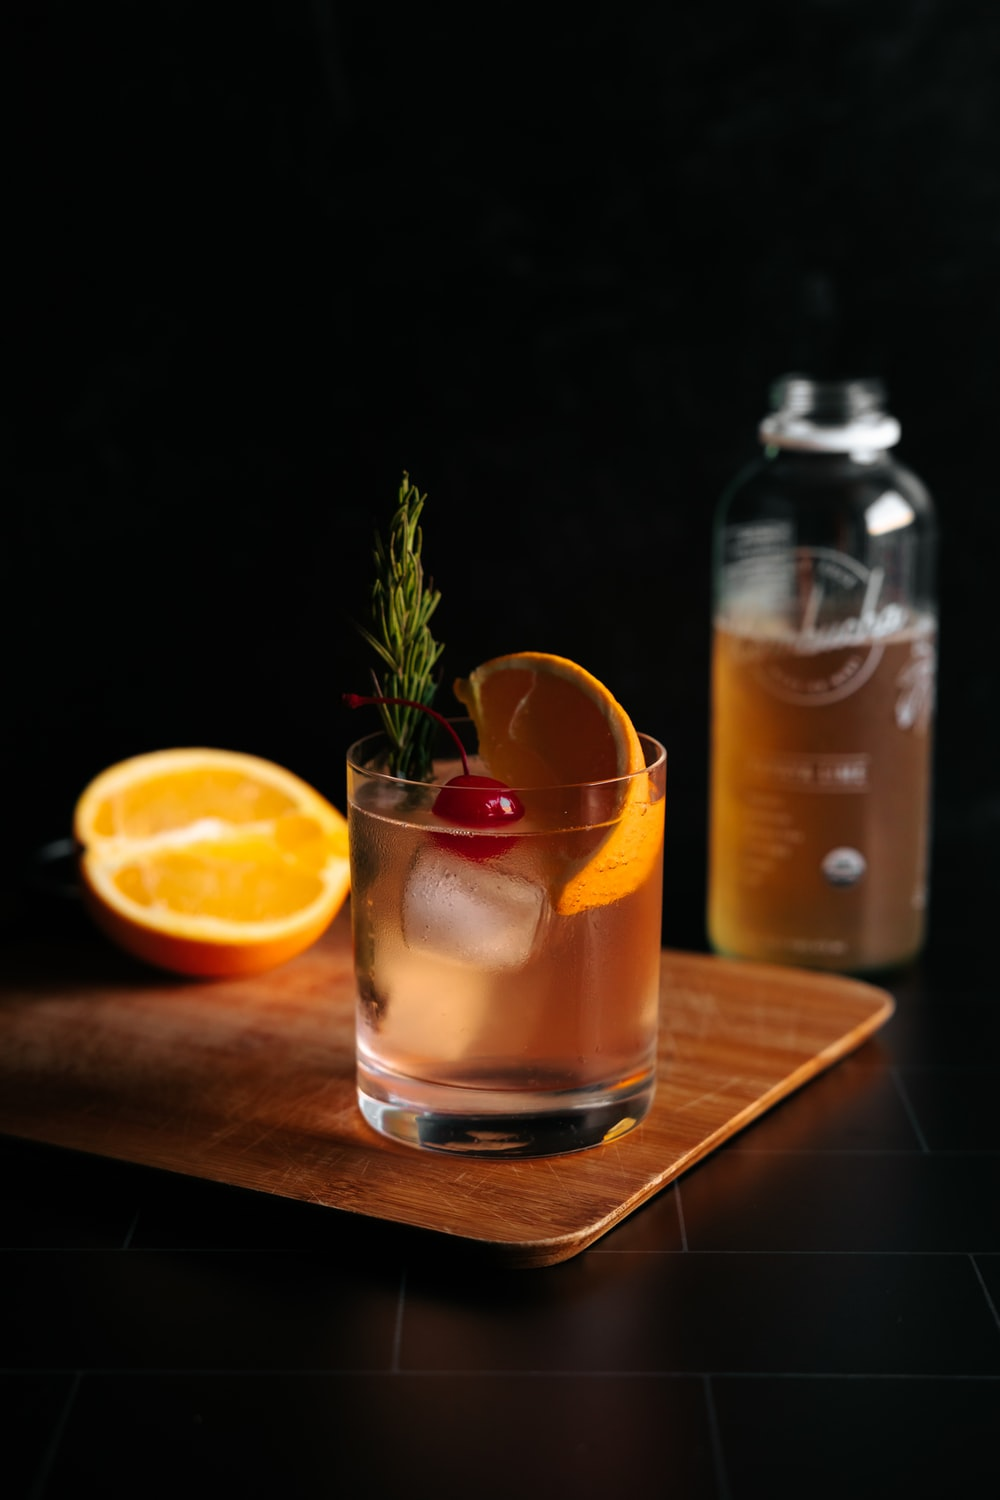 clear drinking glass with orange juice